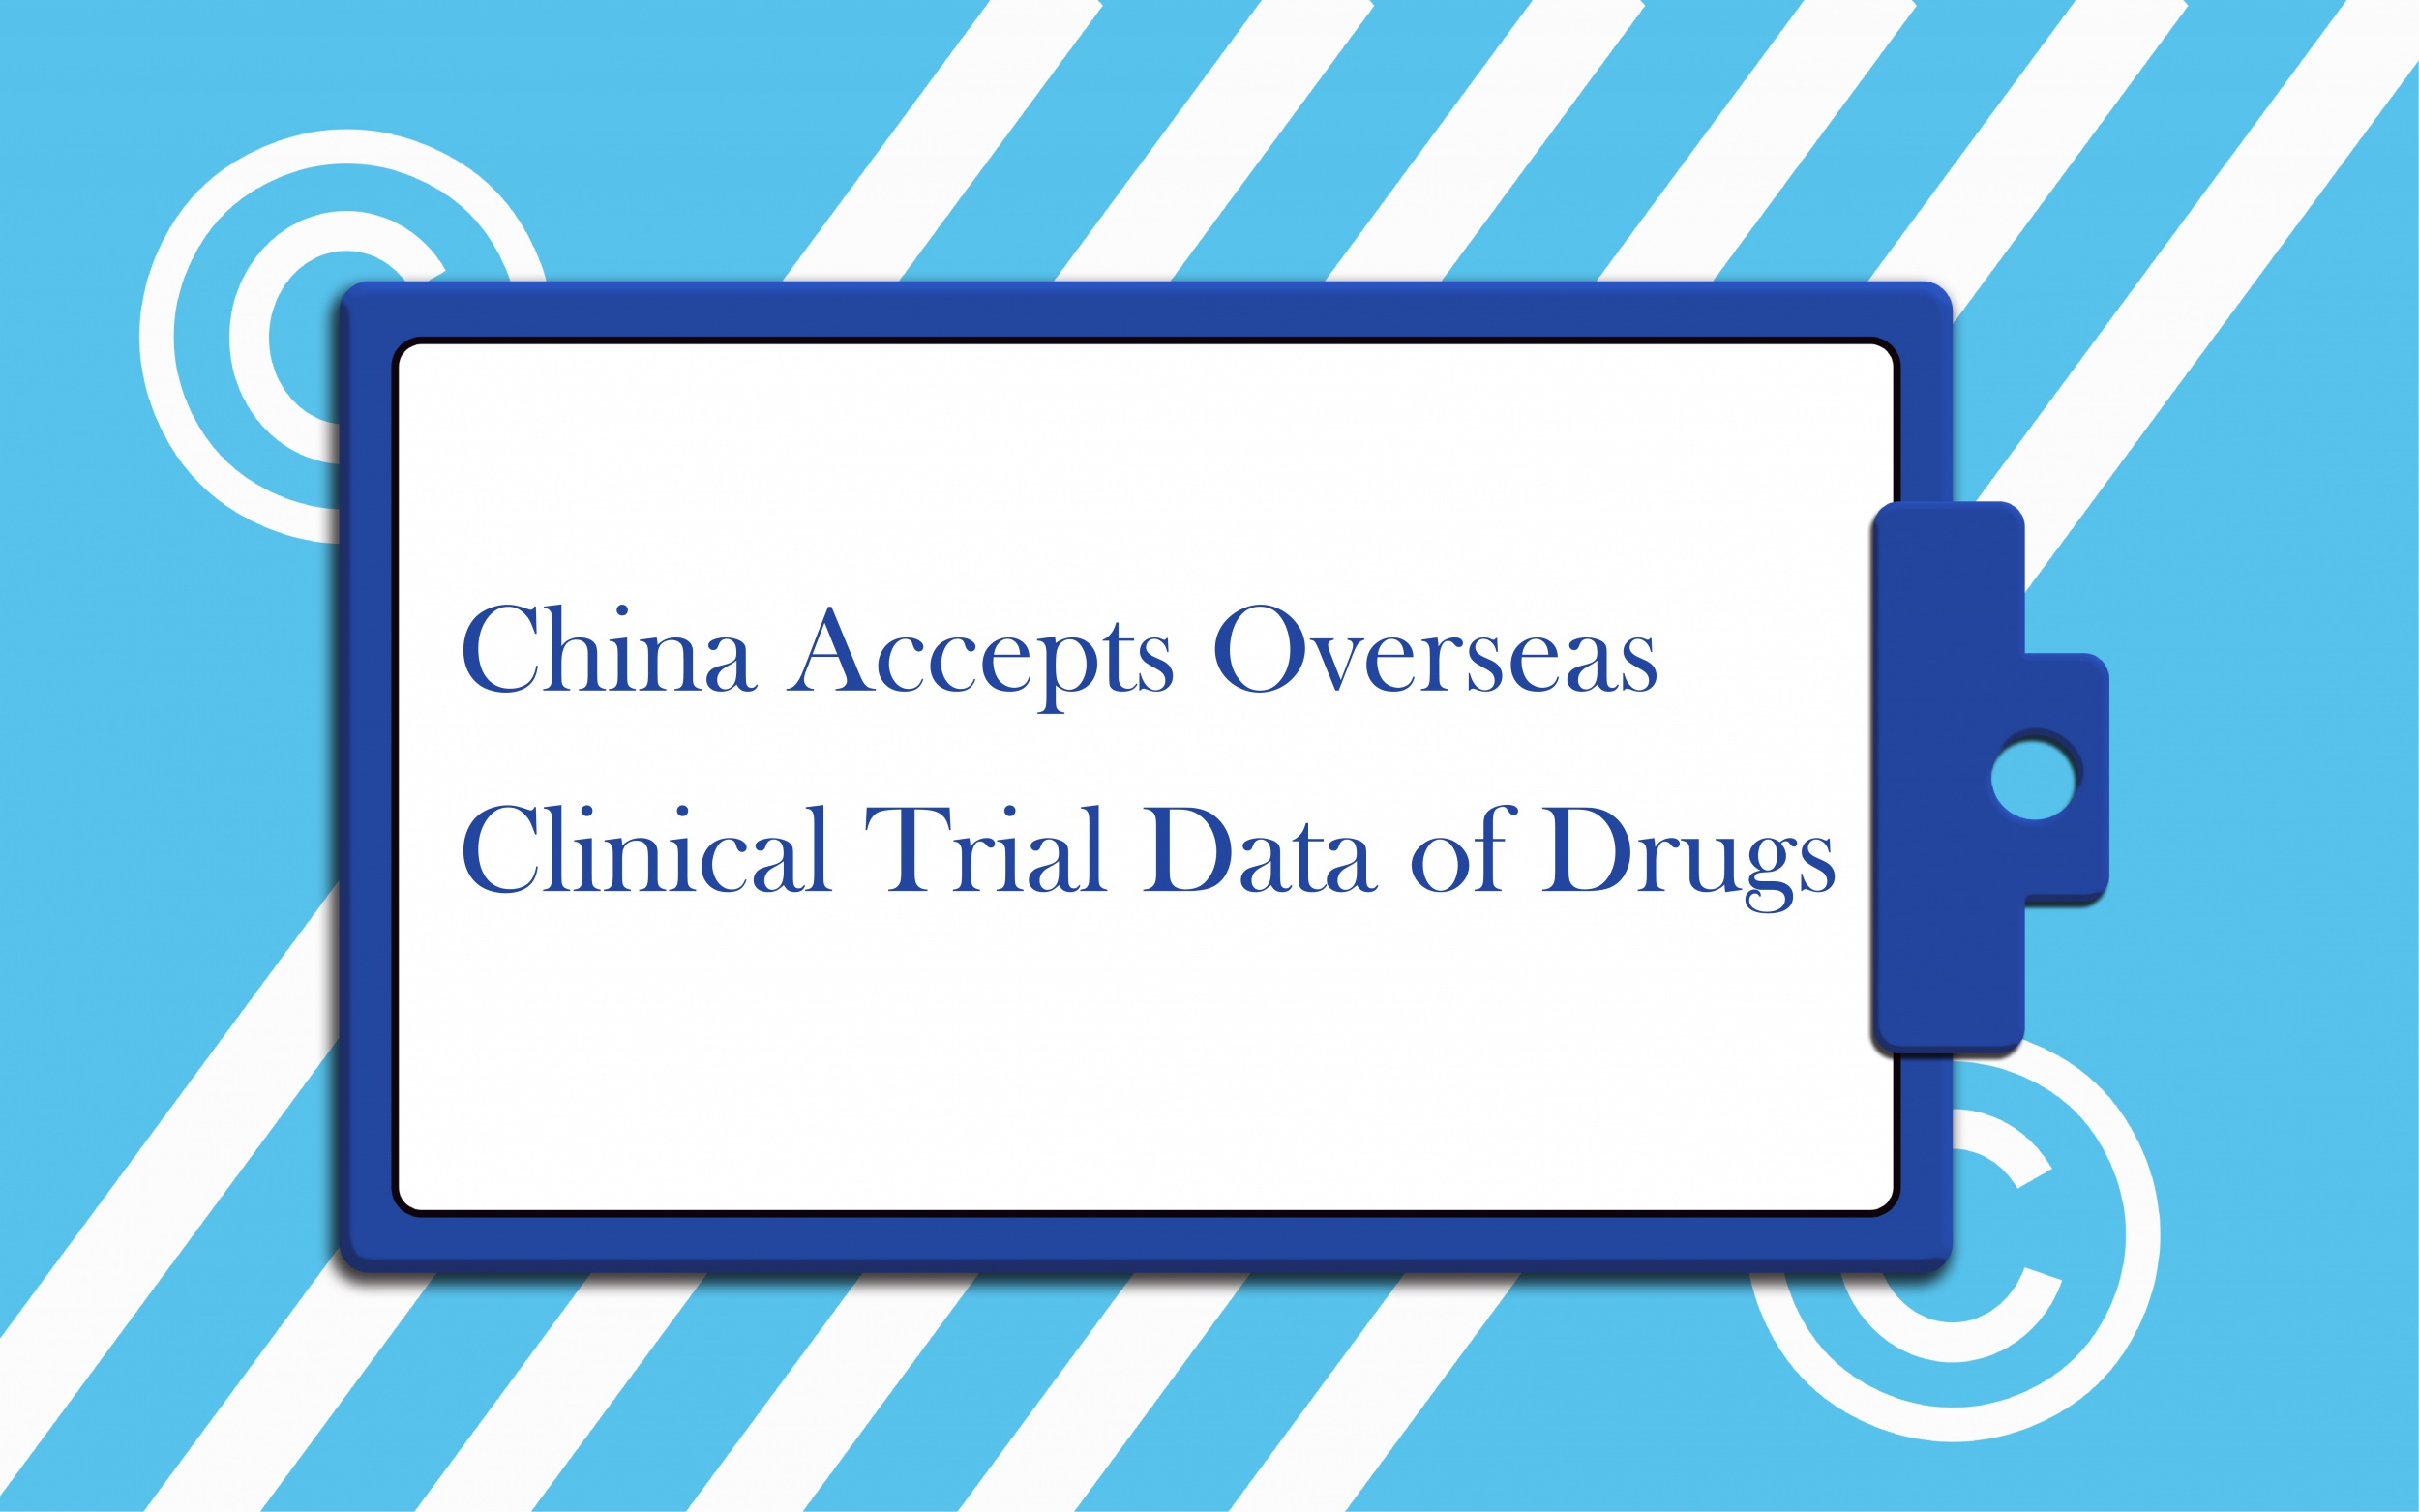 China Accepts Overseas Clinical Trial Data of Drugs